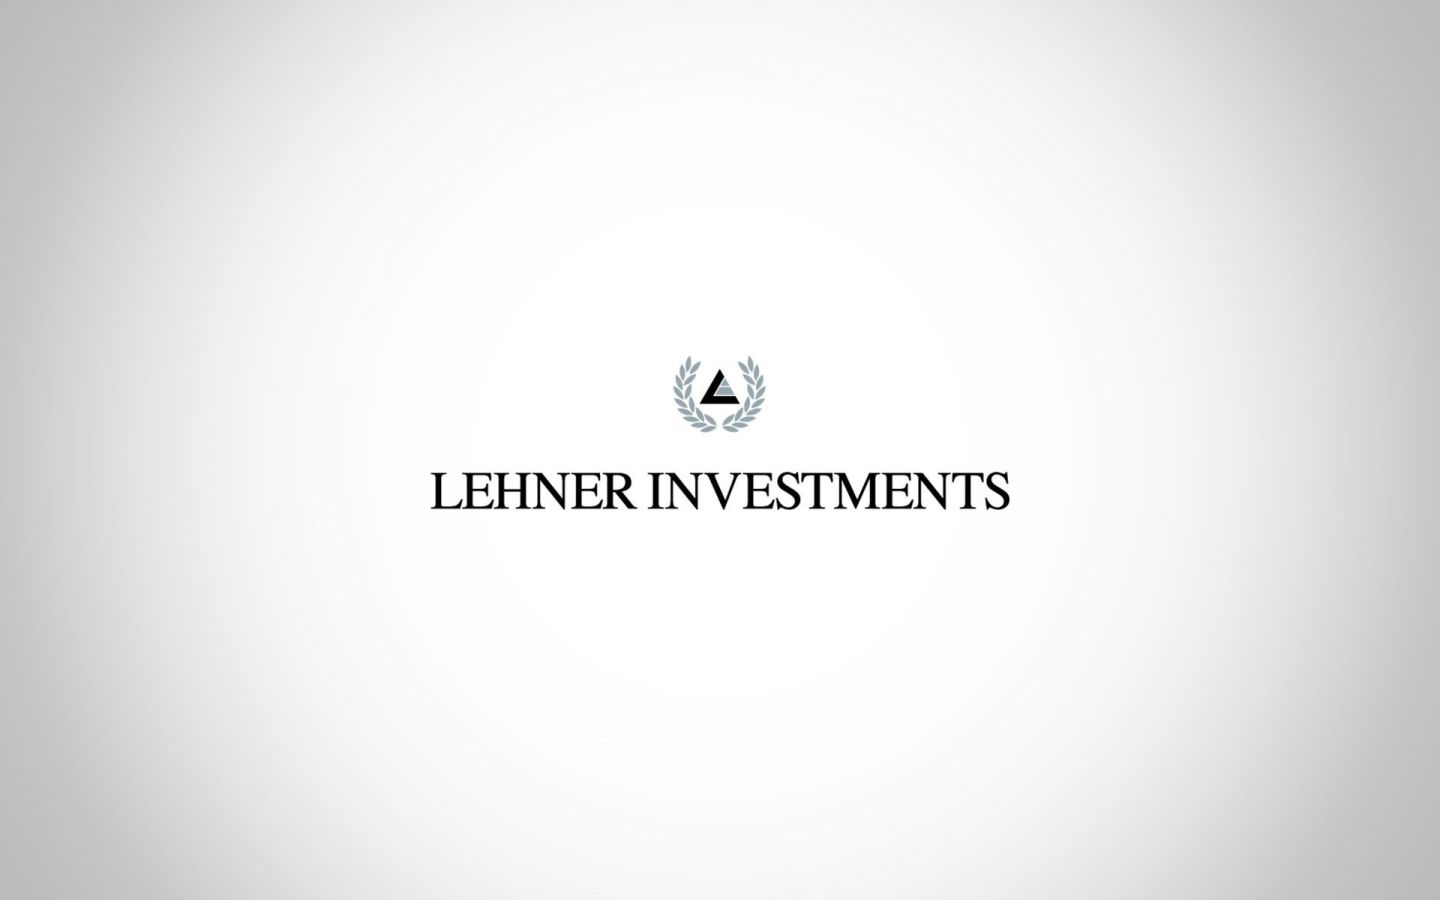 Lehner Investments Branding Project by Crevisio